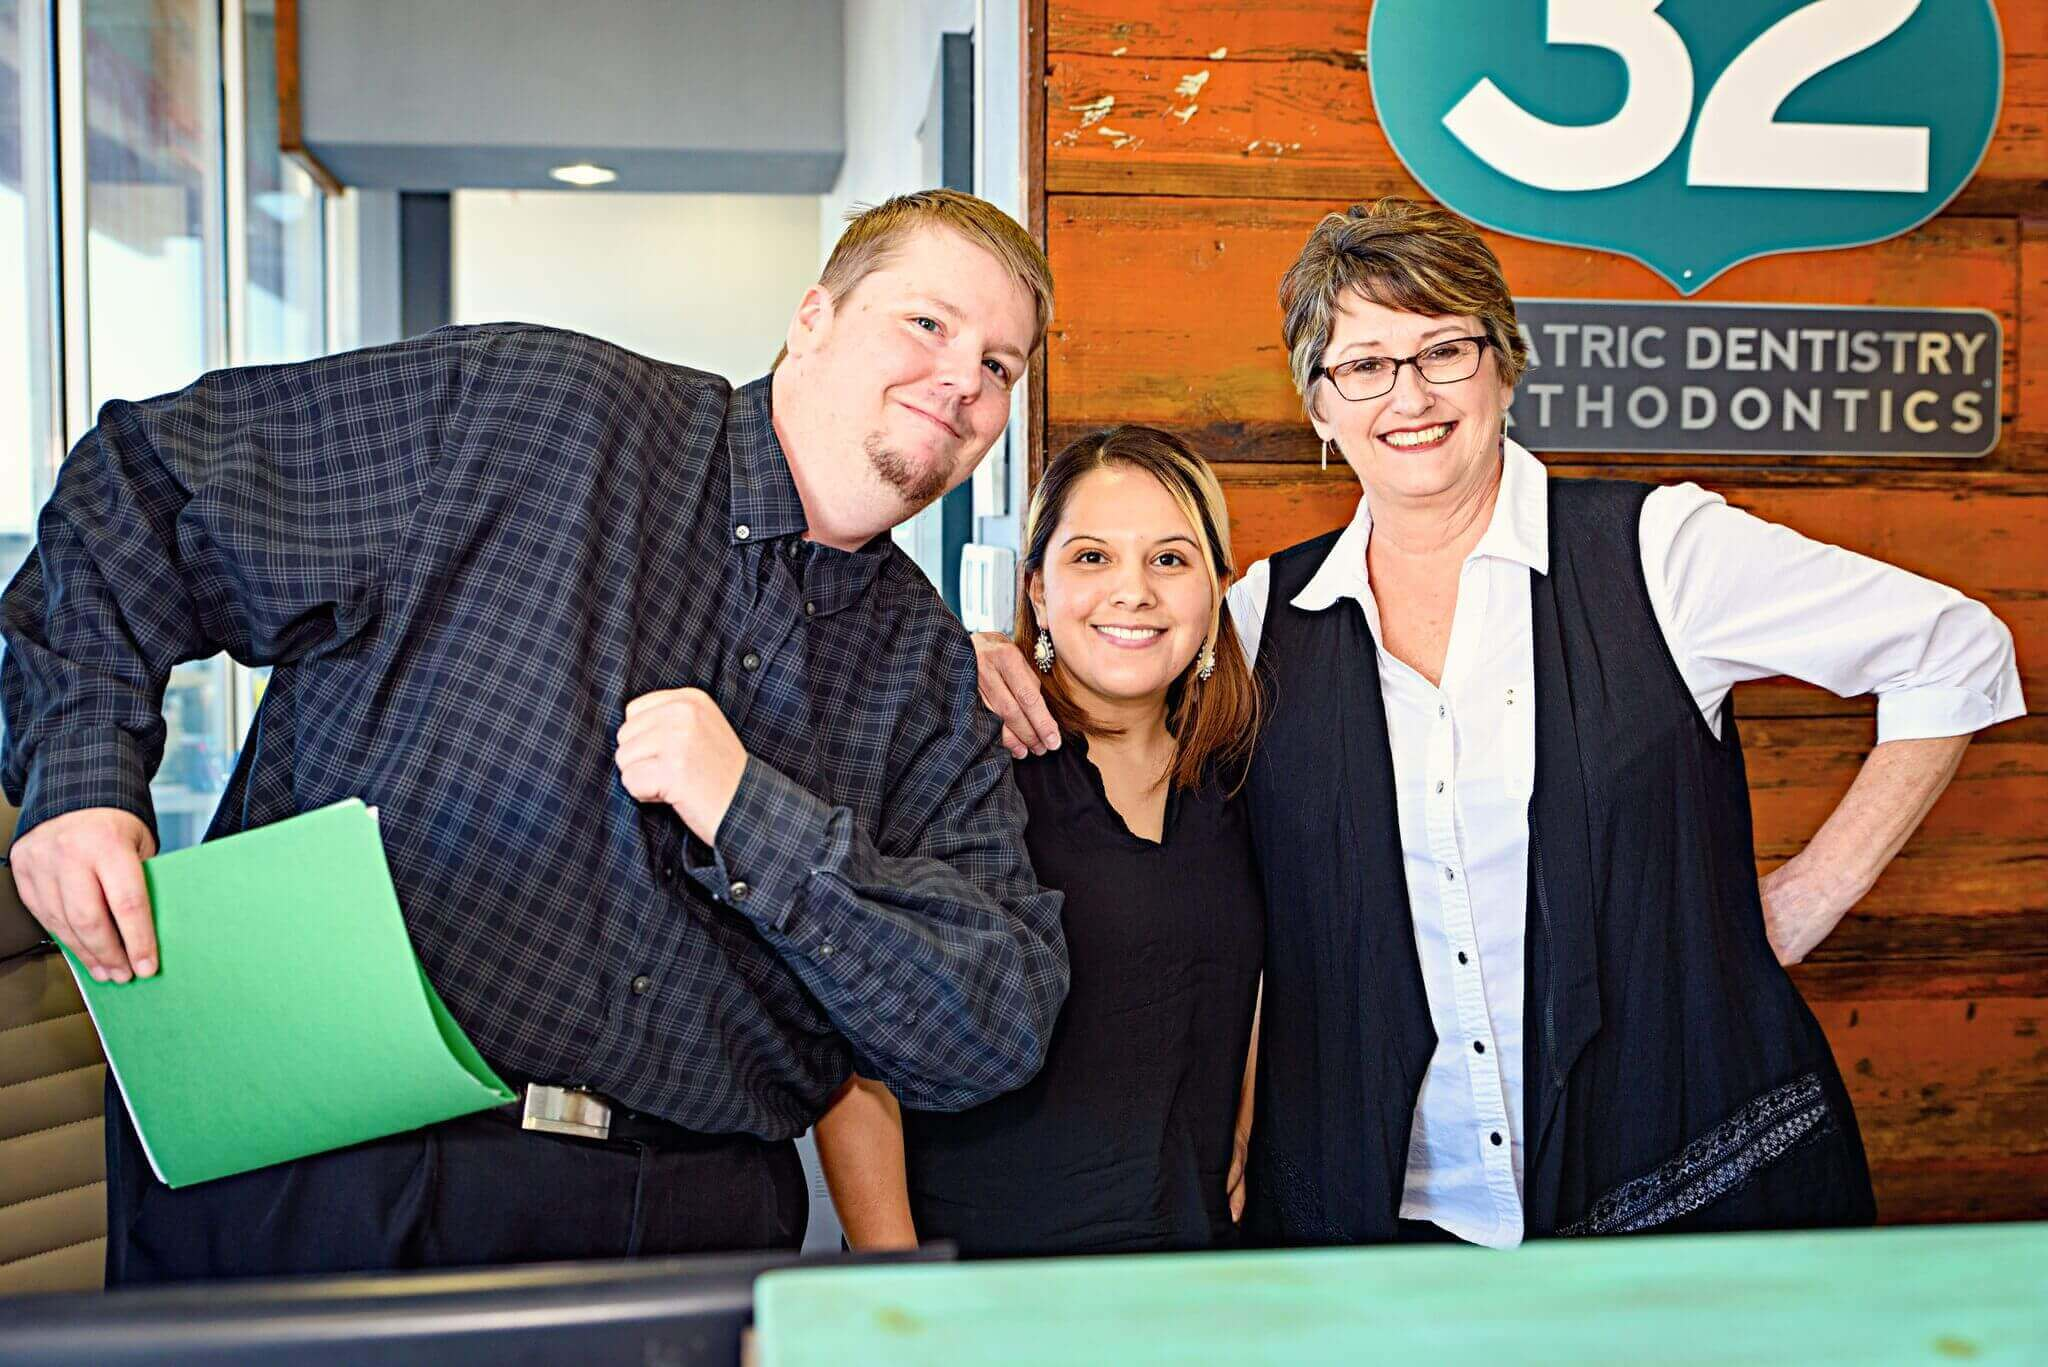 Three office team members of Route 32 Dental in the office reception area